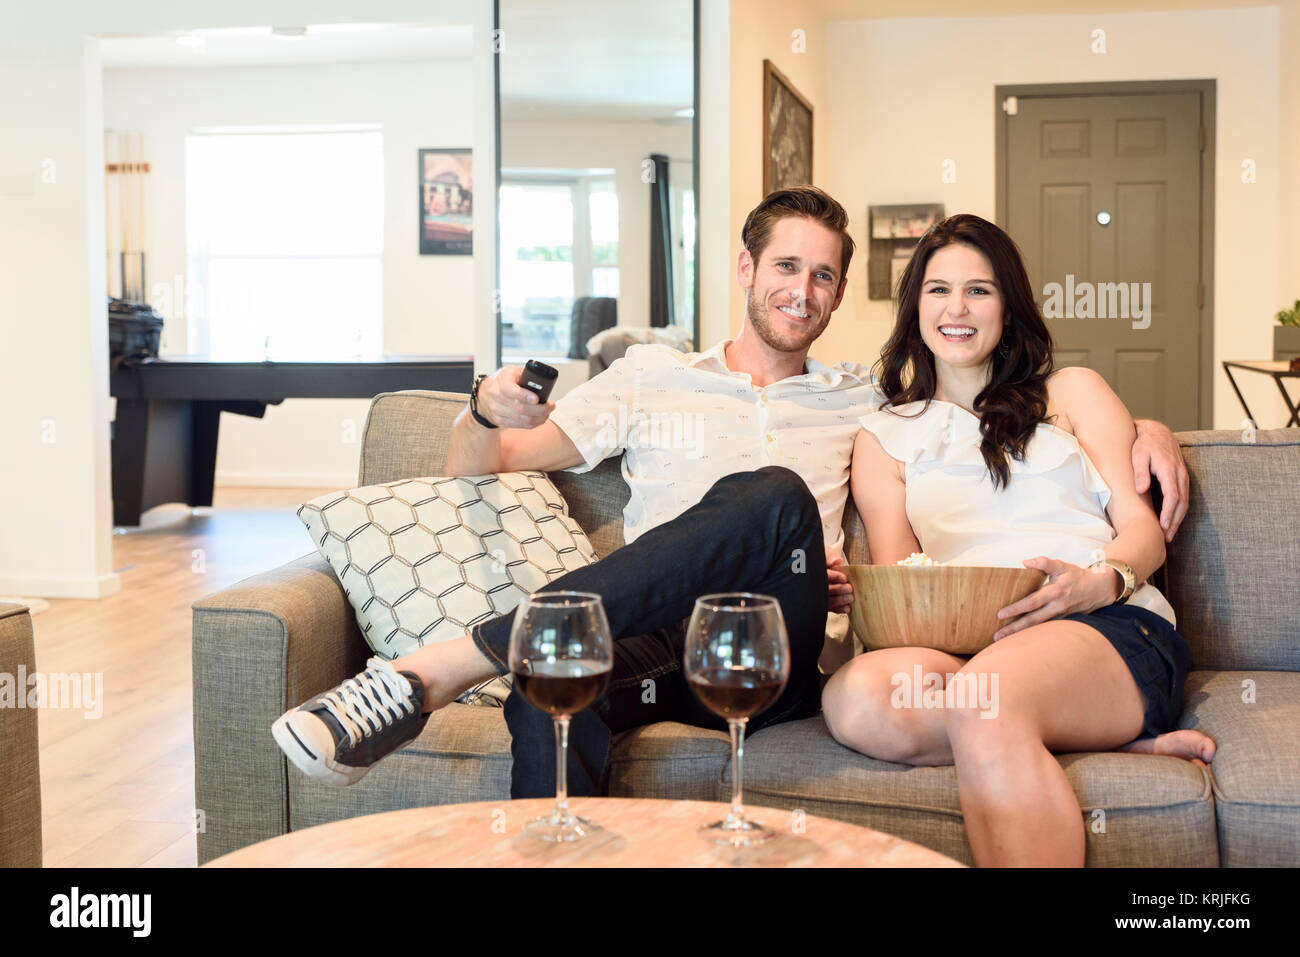 Smiling Caucasian couple sitting on sofa watching television - Stock Image